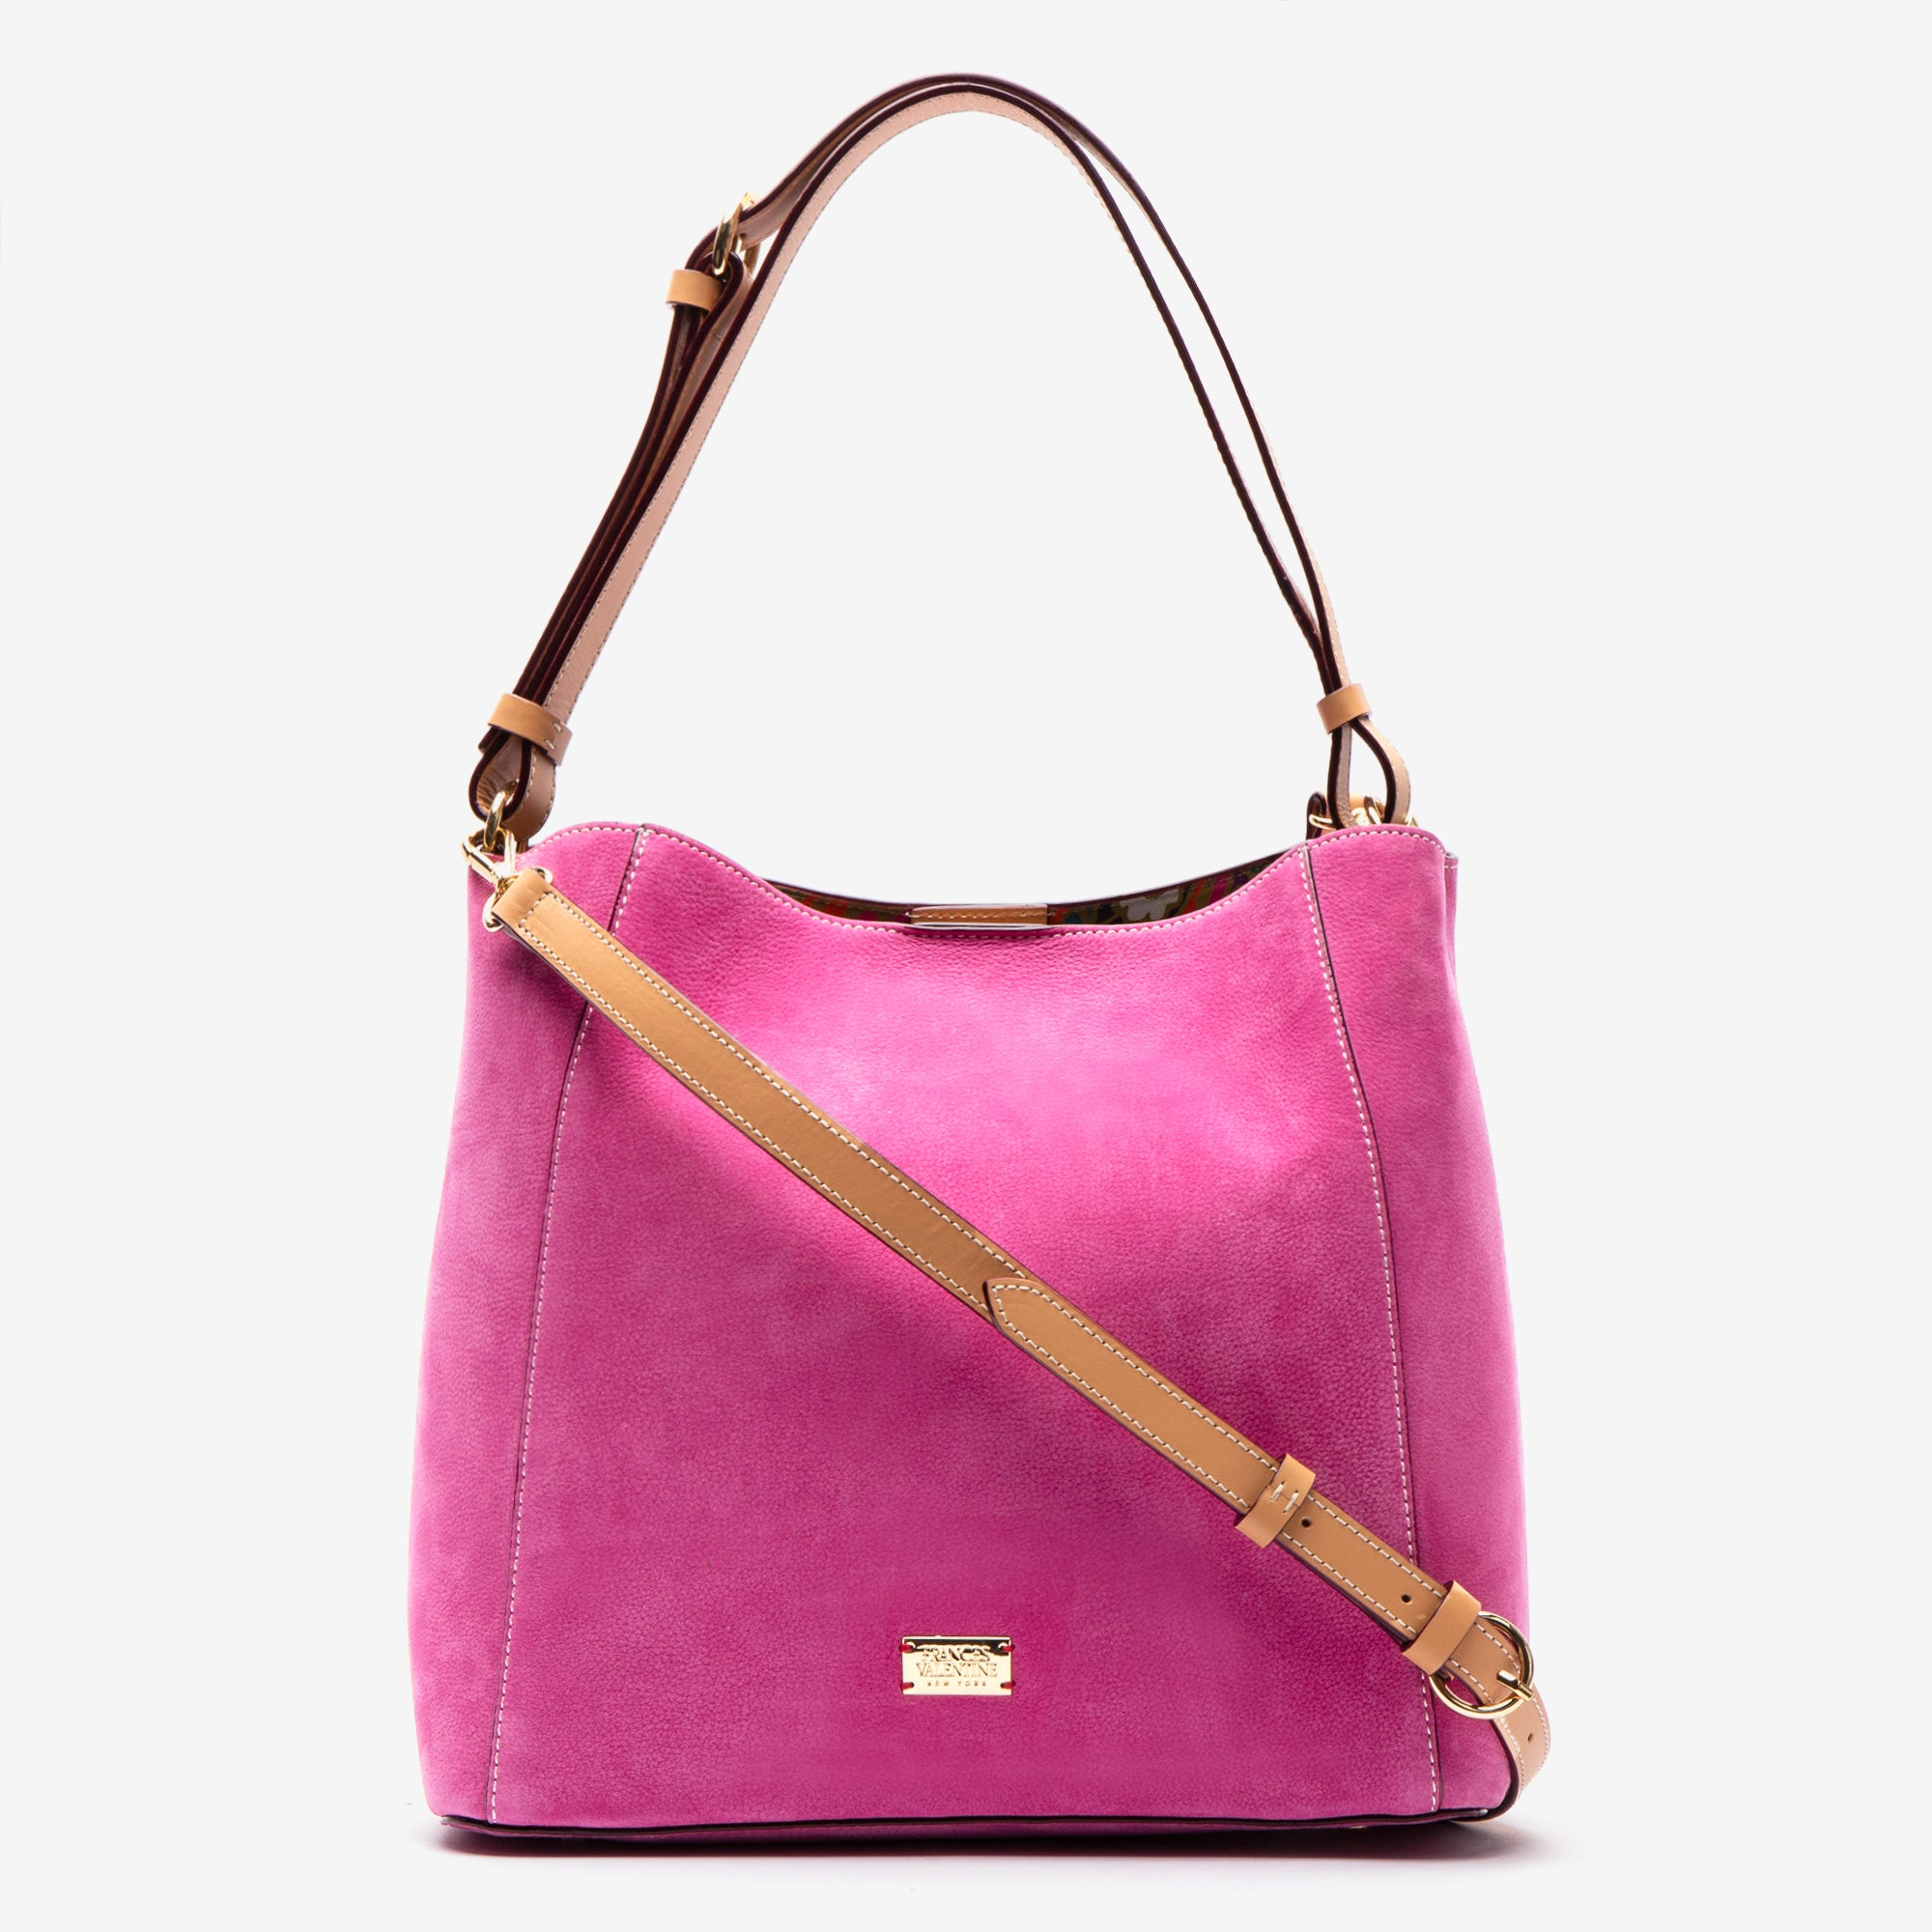 June Hobo Handbag Tumbled Nubuck Pink